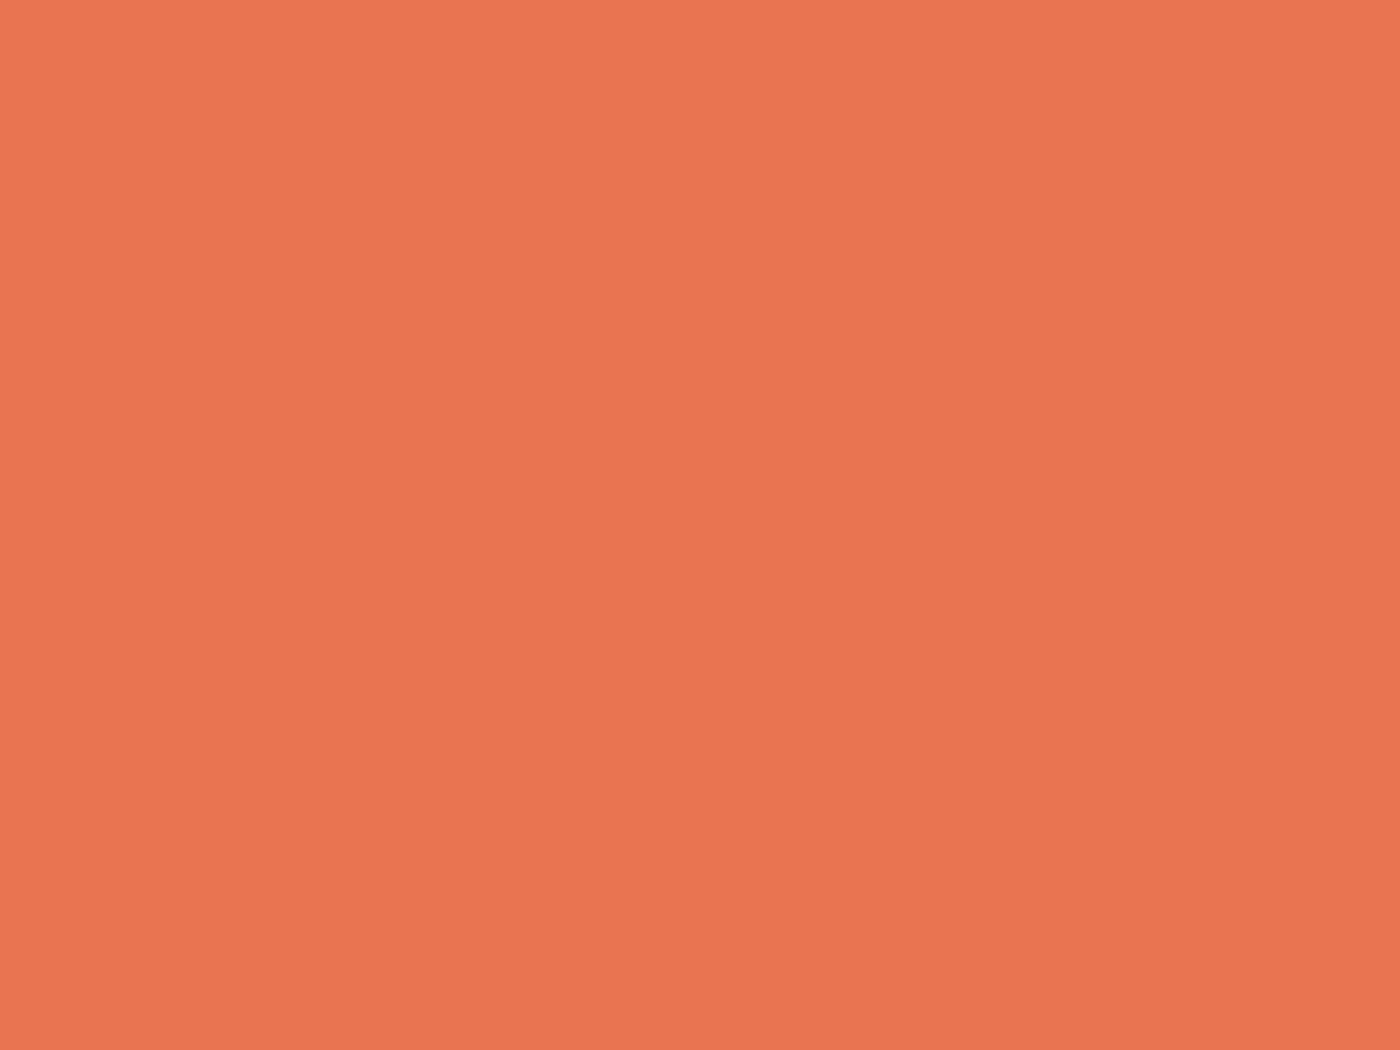 1400x1050 Burnt Sienna Solid Color Background